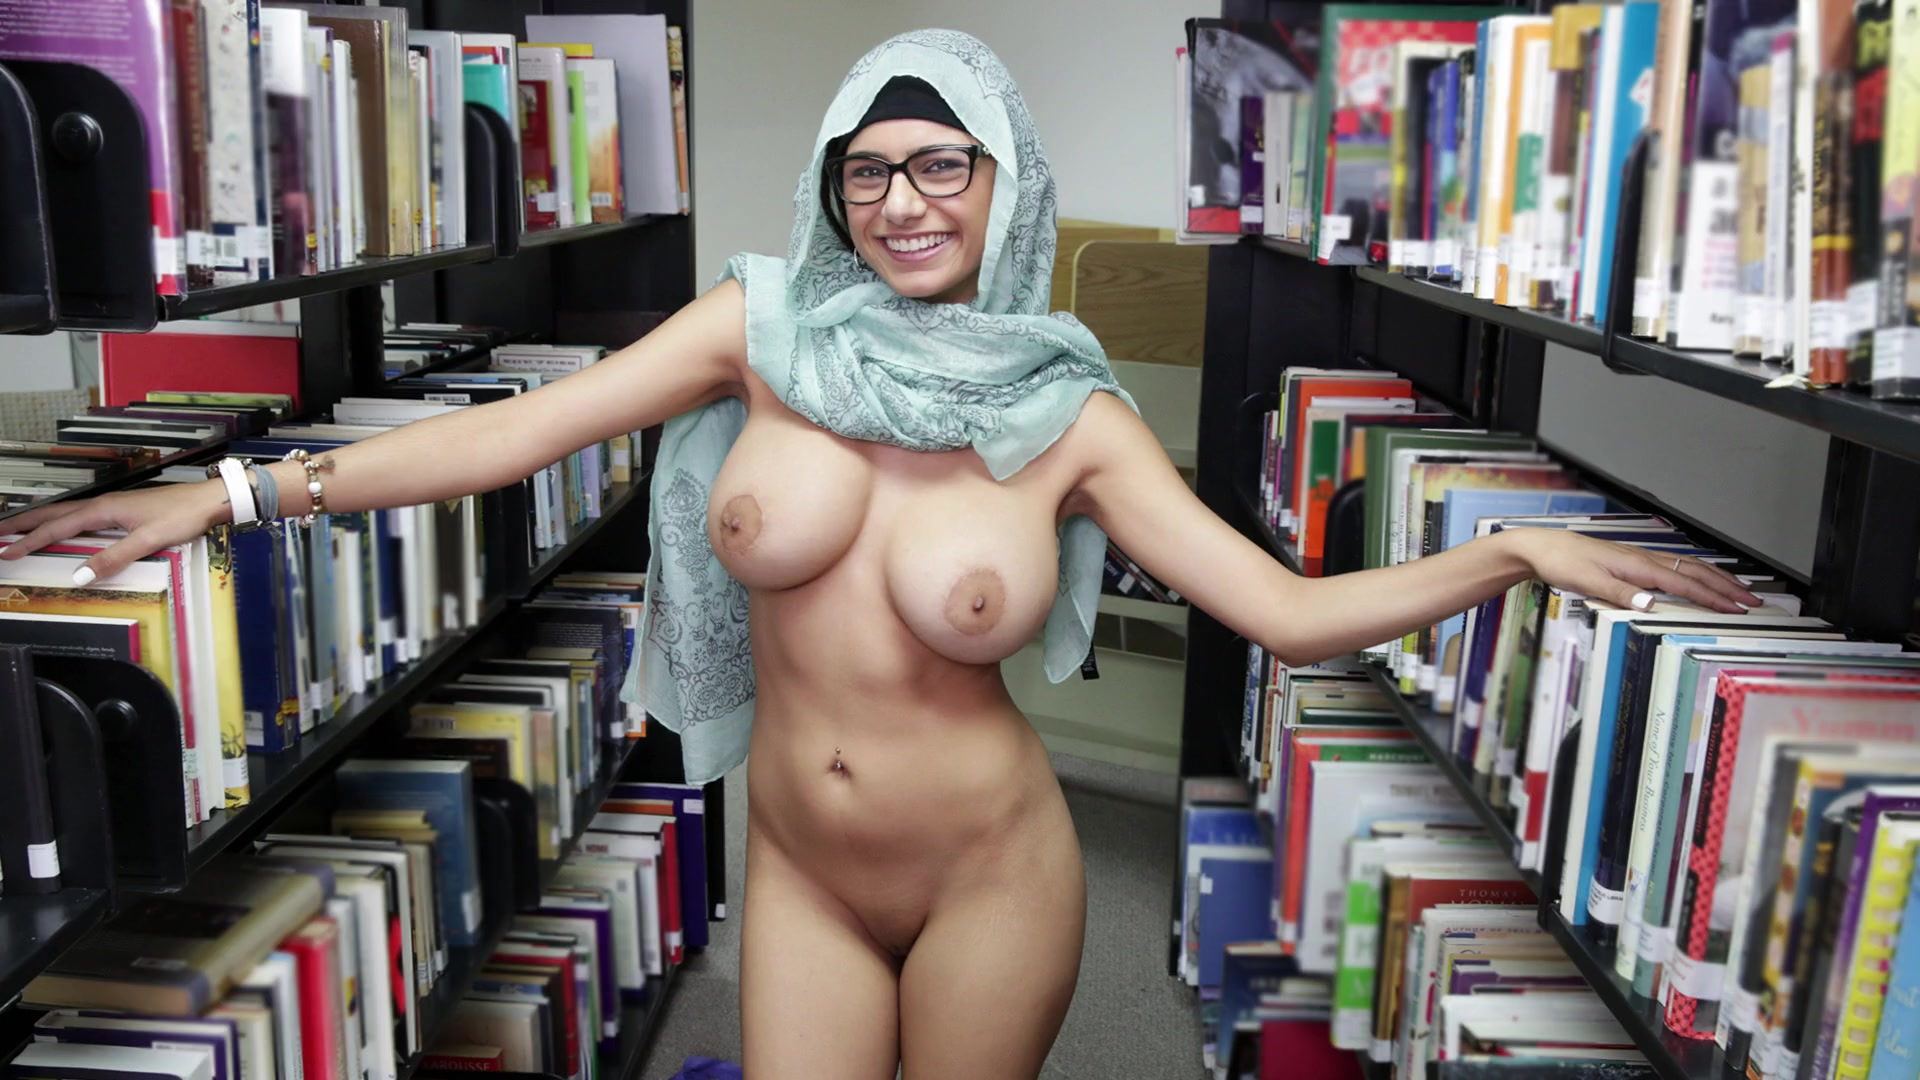 Mia khalifa nude having bed sex pics